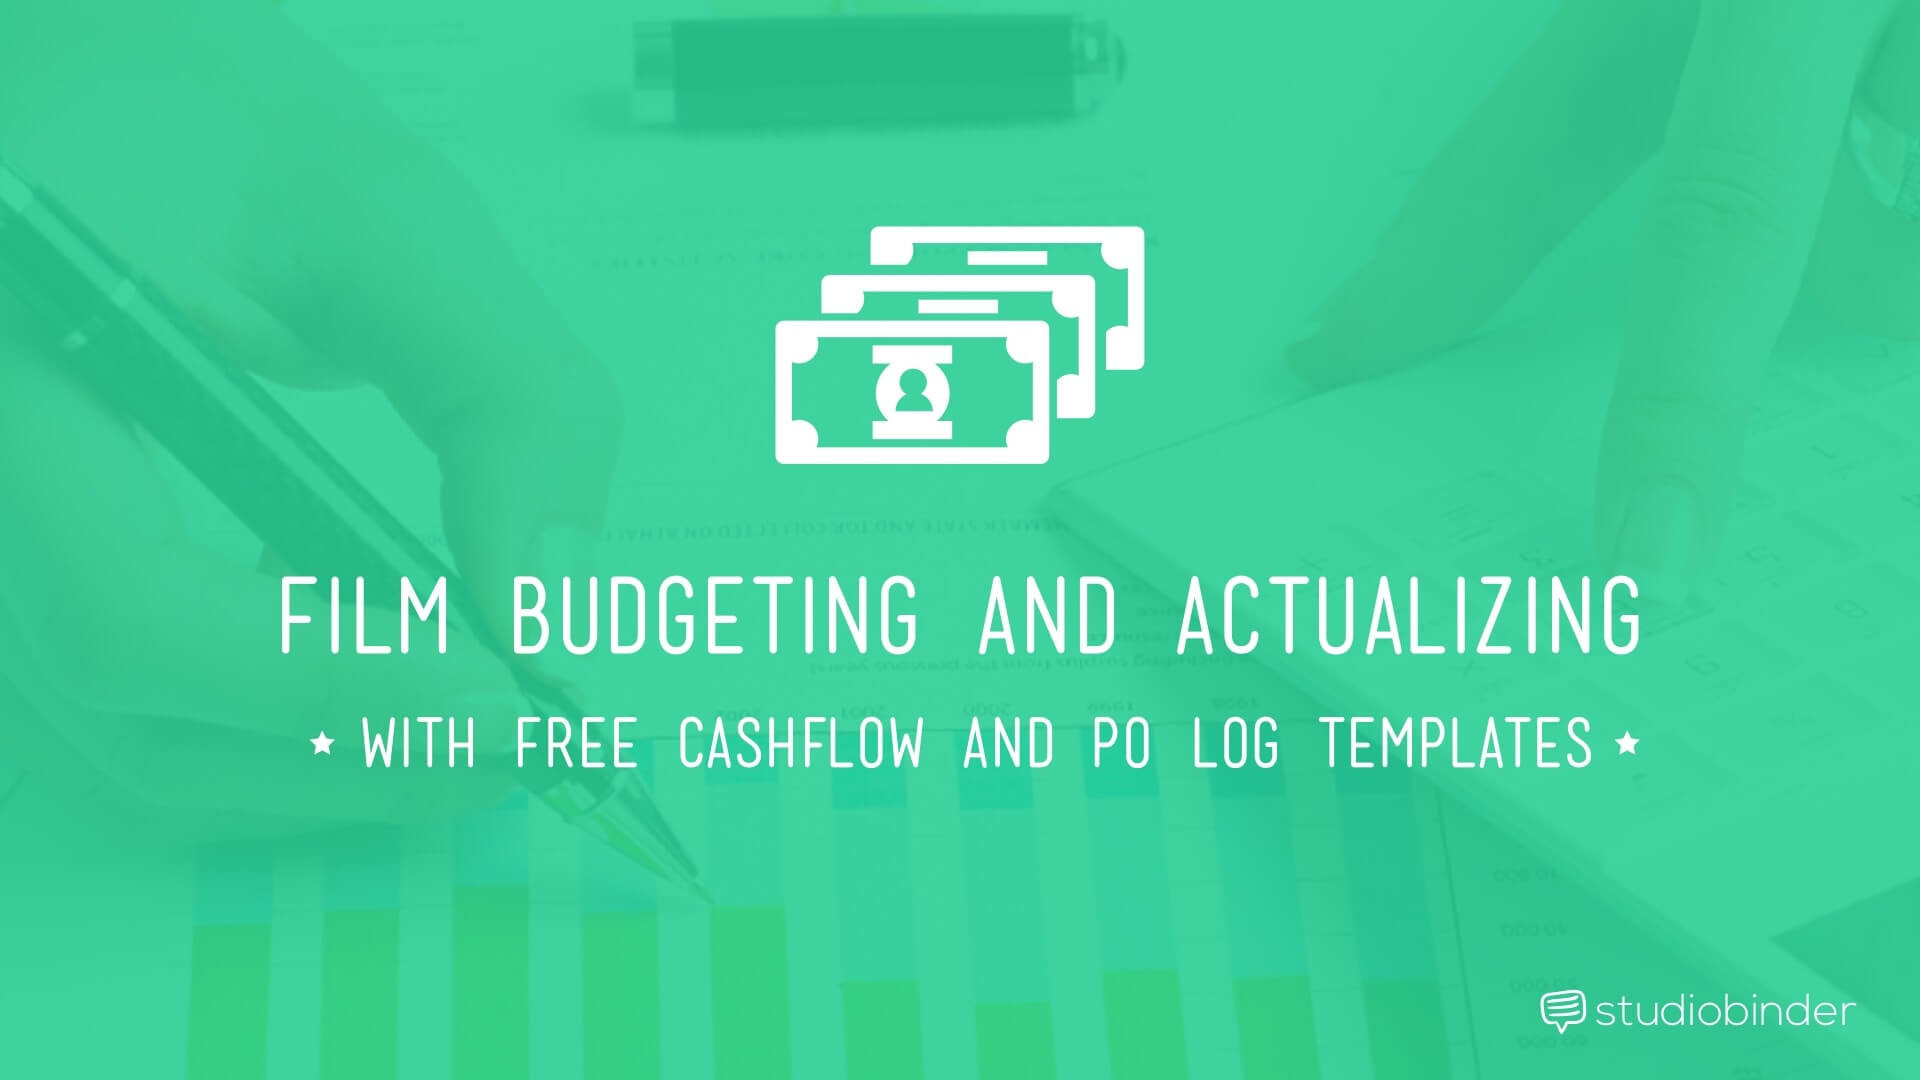 Film Budgeting and Actualizing - StudioBinder